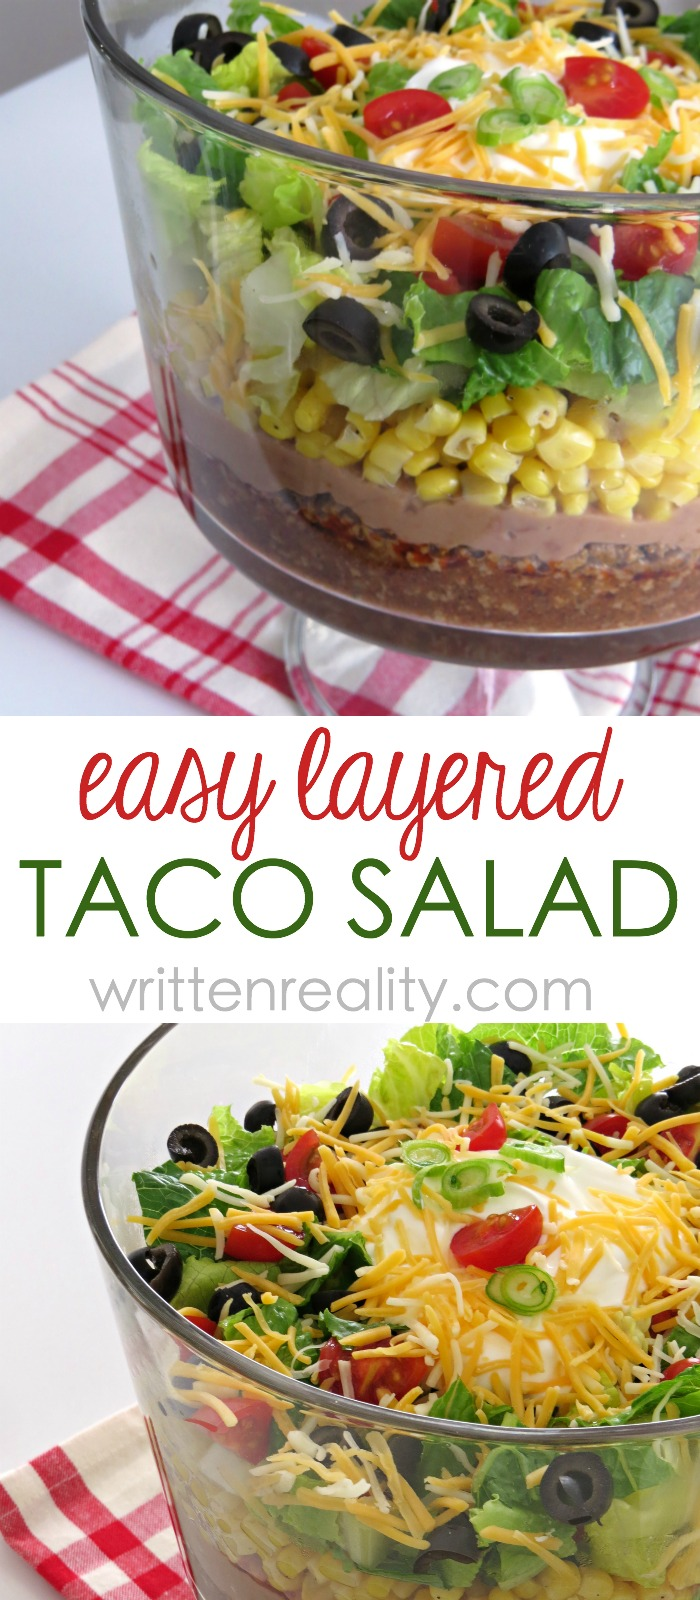 Quick And Easy Layered Taco Salad Recipe Written Reality